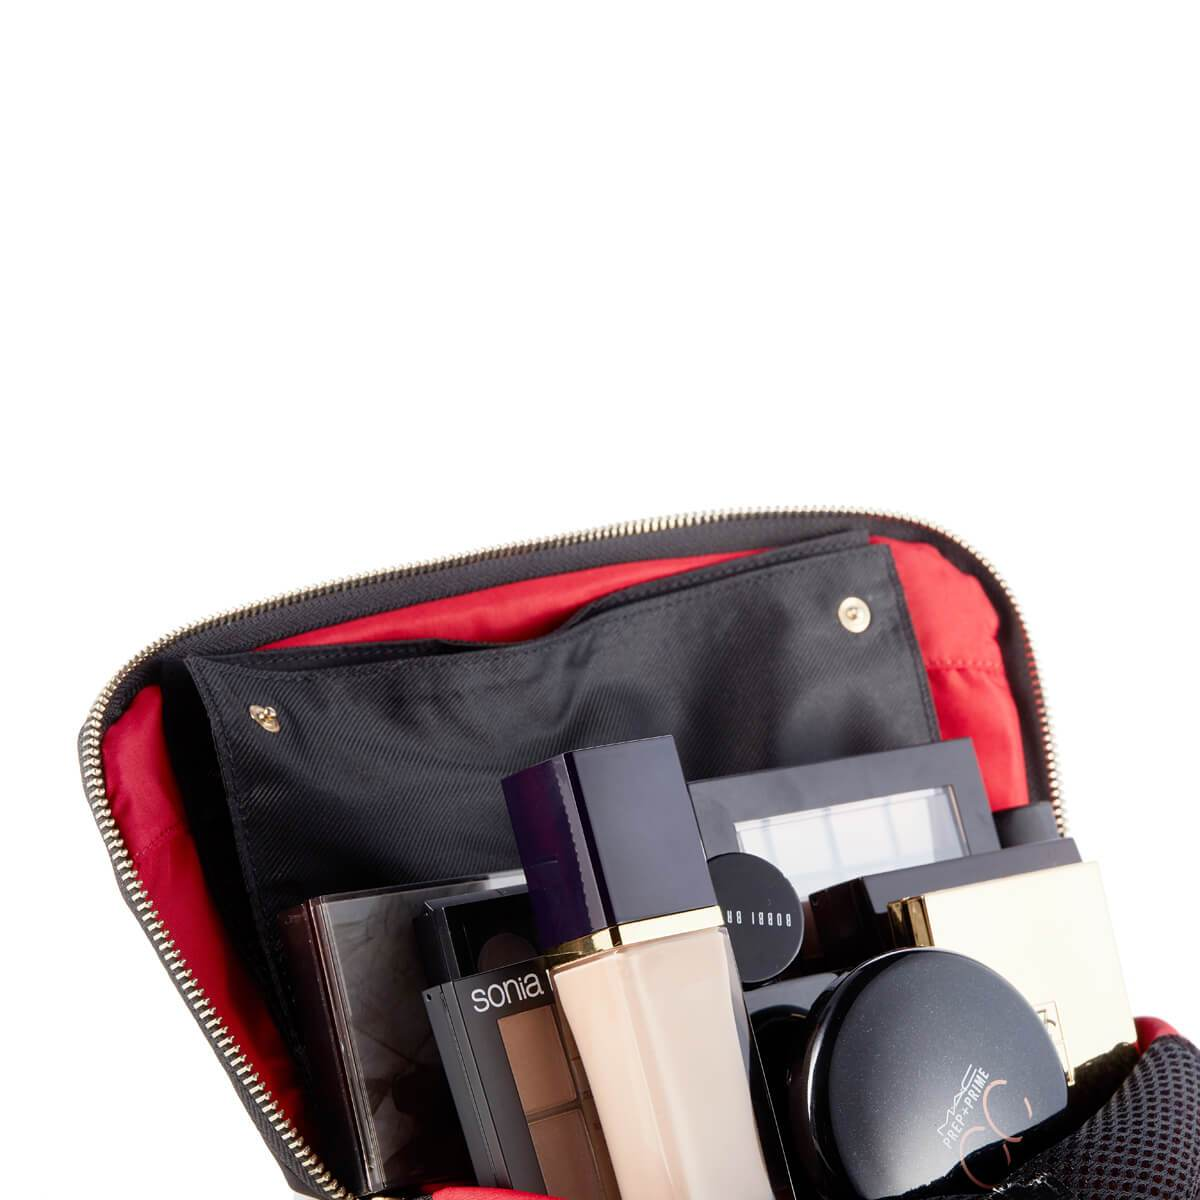 color: Signature+Luxurious Grey Leather with Red Interior+Brush Organizer; alt: Signature Medium Leather Makeup Bag | KUSSHI